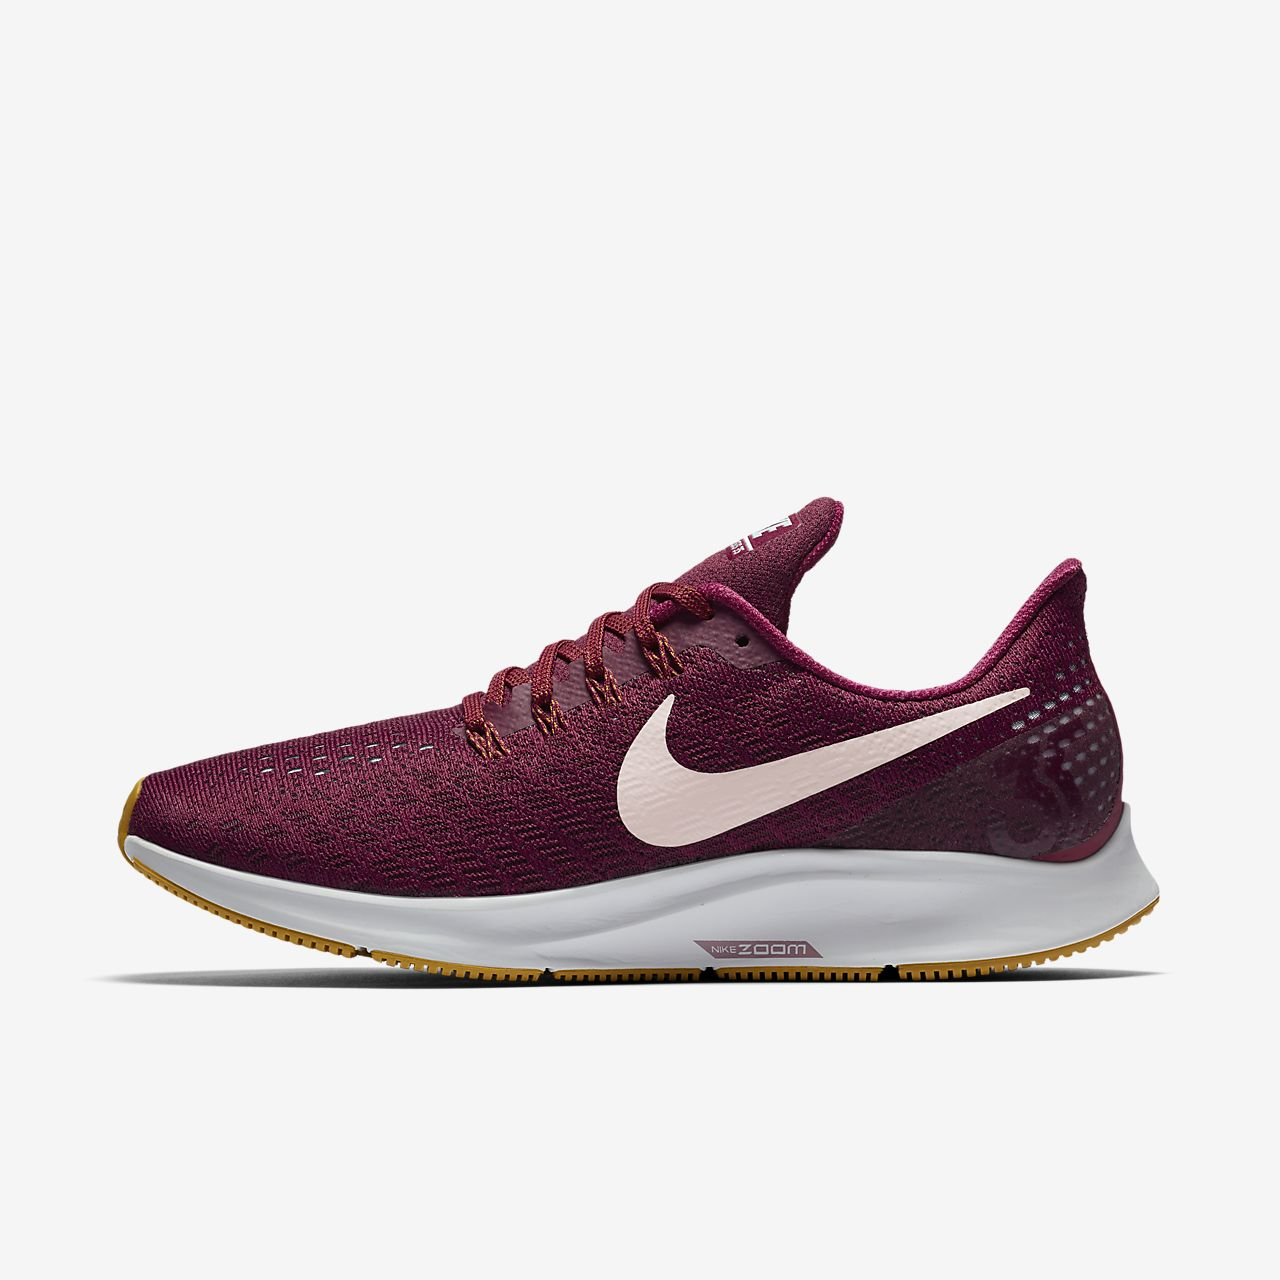 ef383559c6e8 Nike Air Zoom Pegasus 35 Women s Running Shoe. Nike.com SG